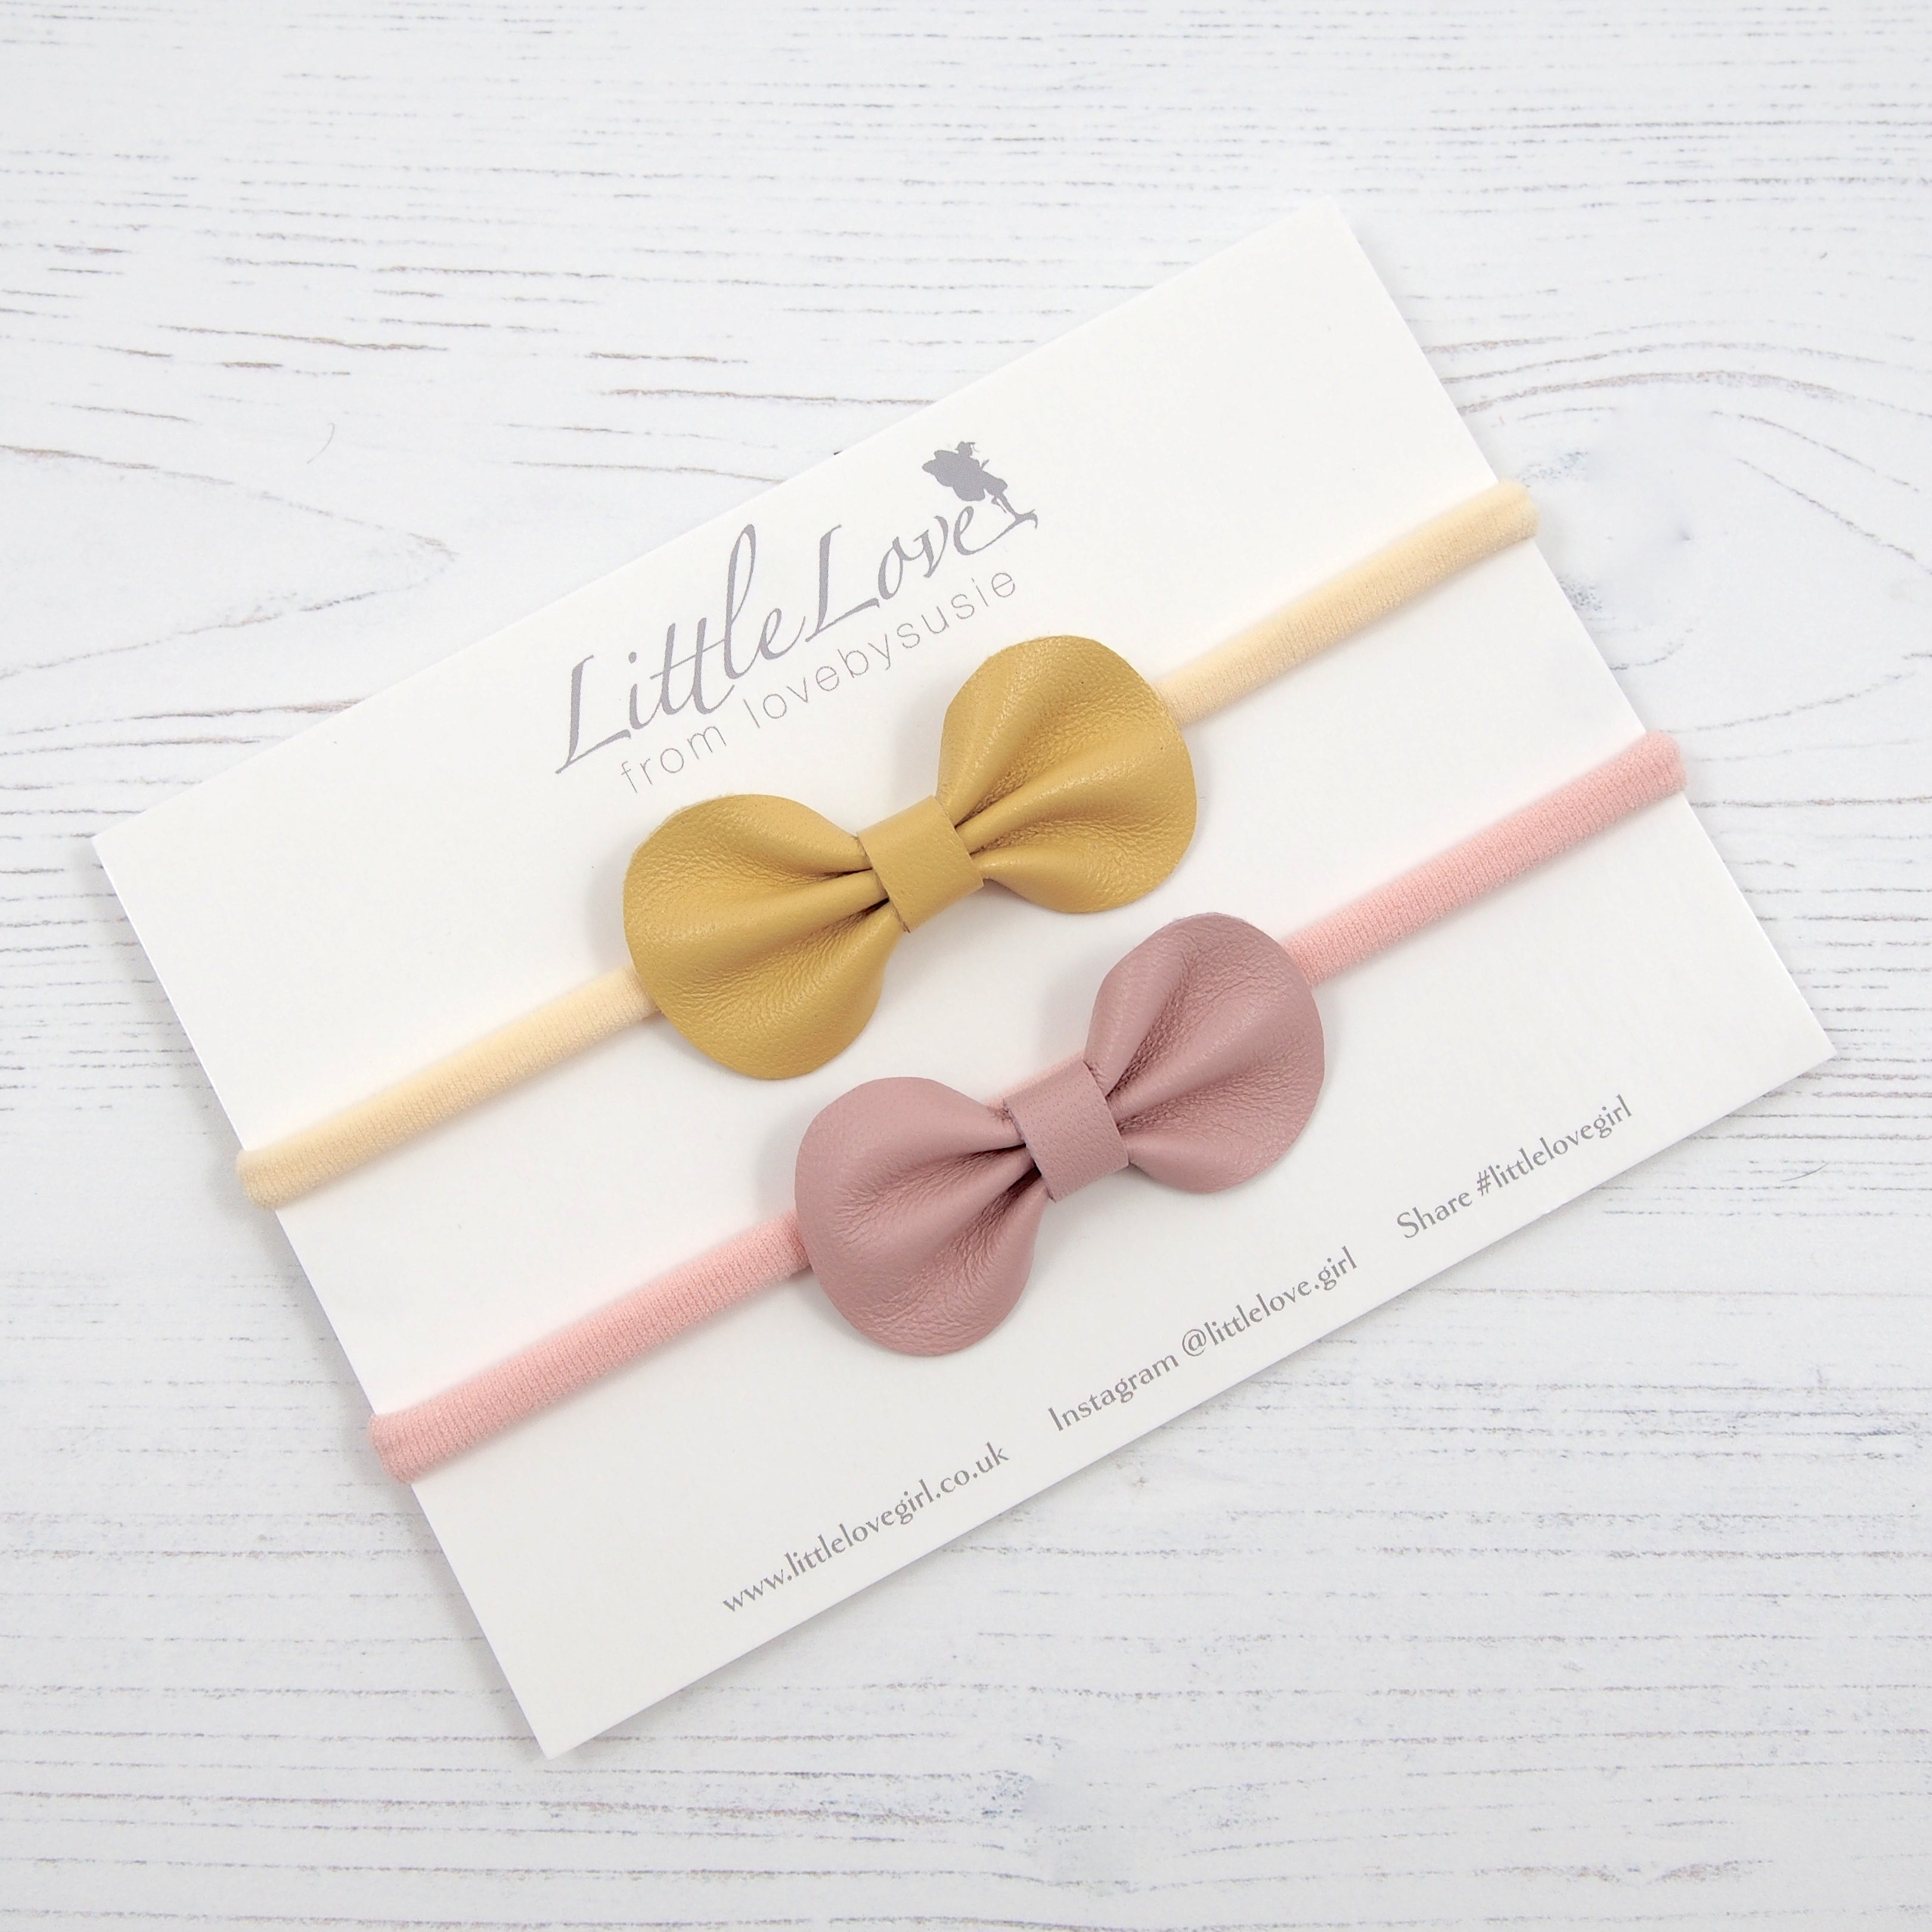 Little Love Spring Hair bow set for your baby toddler in pink and yellow, newborn bow headband, Pink bow for baby, Easter baby bows, leather bow headband, Yellow Baby Bow Headbad, Pale Pink Bow Headband for babies, Pink Bow Baby Headband, Leather bow baby headbands, leather bow headband for baby